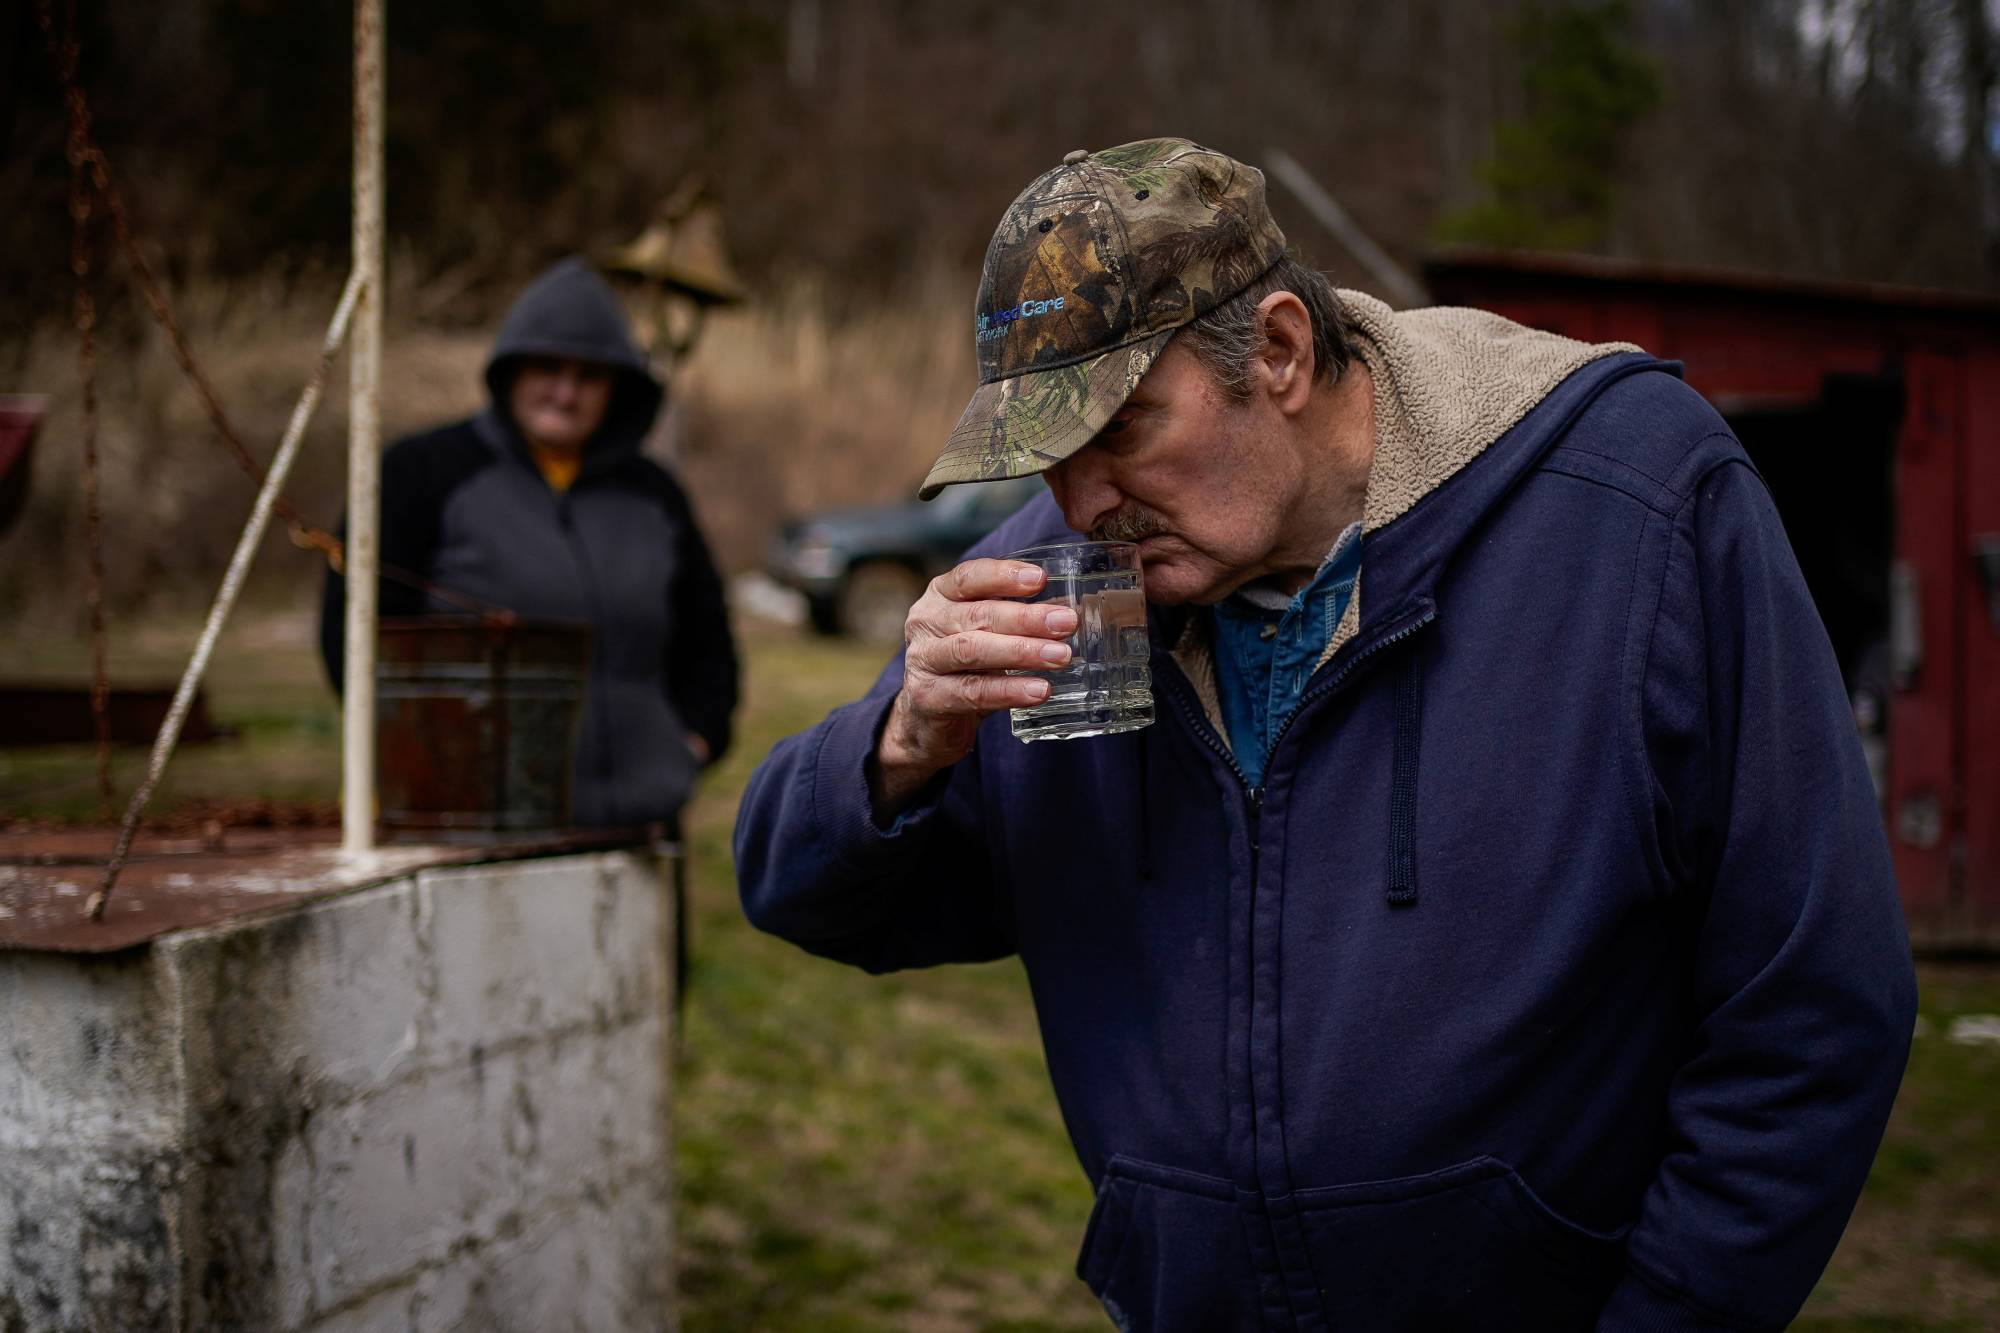 Hanson Rowe, a landowner who blames a leaky gas well on his property for health problems, smells water drawn from a contaminated well on his property in Salyersville, Kentucky, in February.  | REUTERS